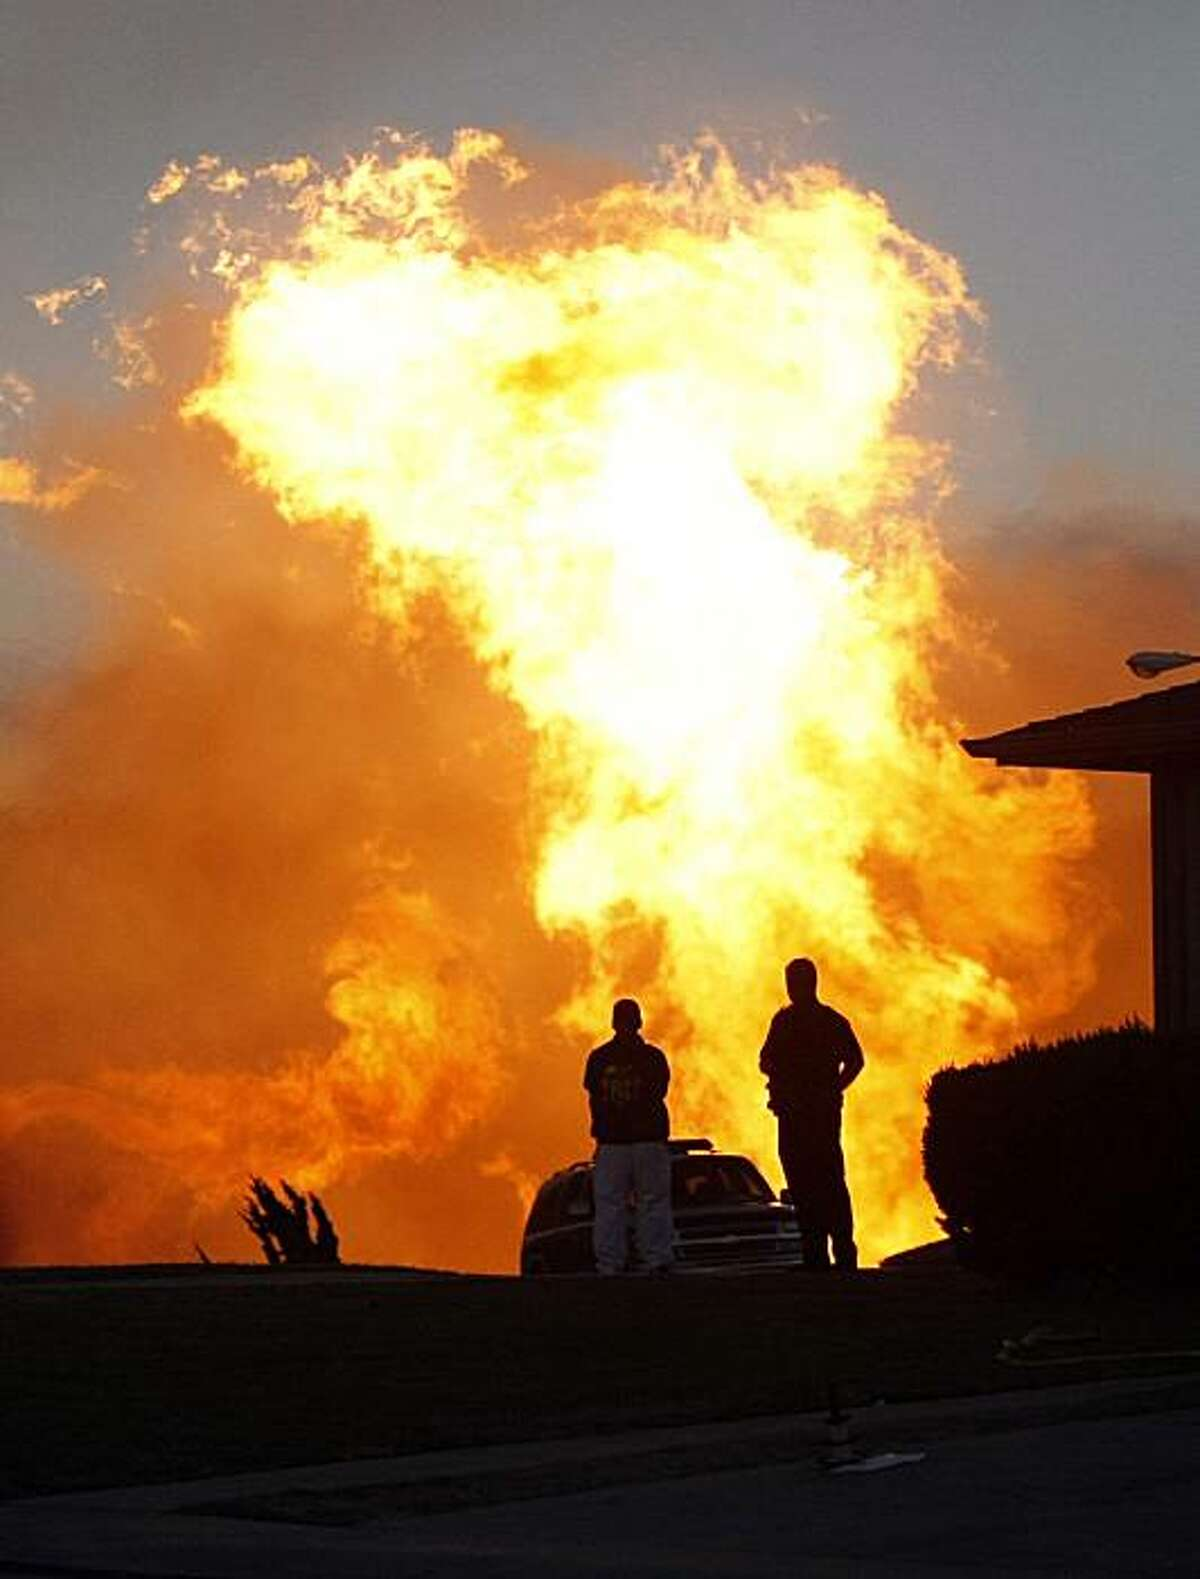 Homes burn in a neighborhood off of Sneath Lane after an explosion, Sept. 9, 2010, in San Bruno, Calif.